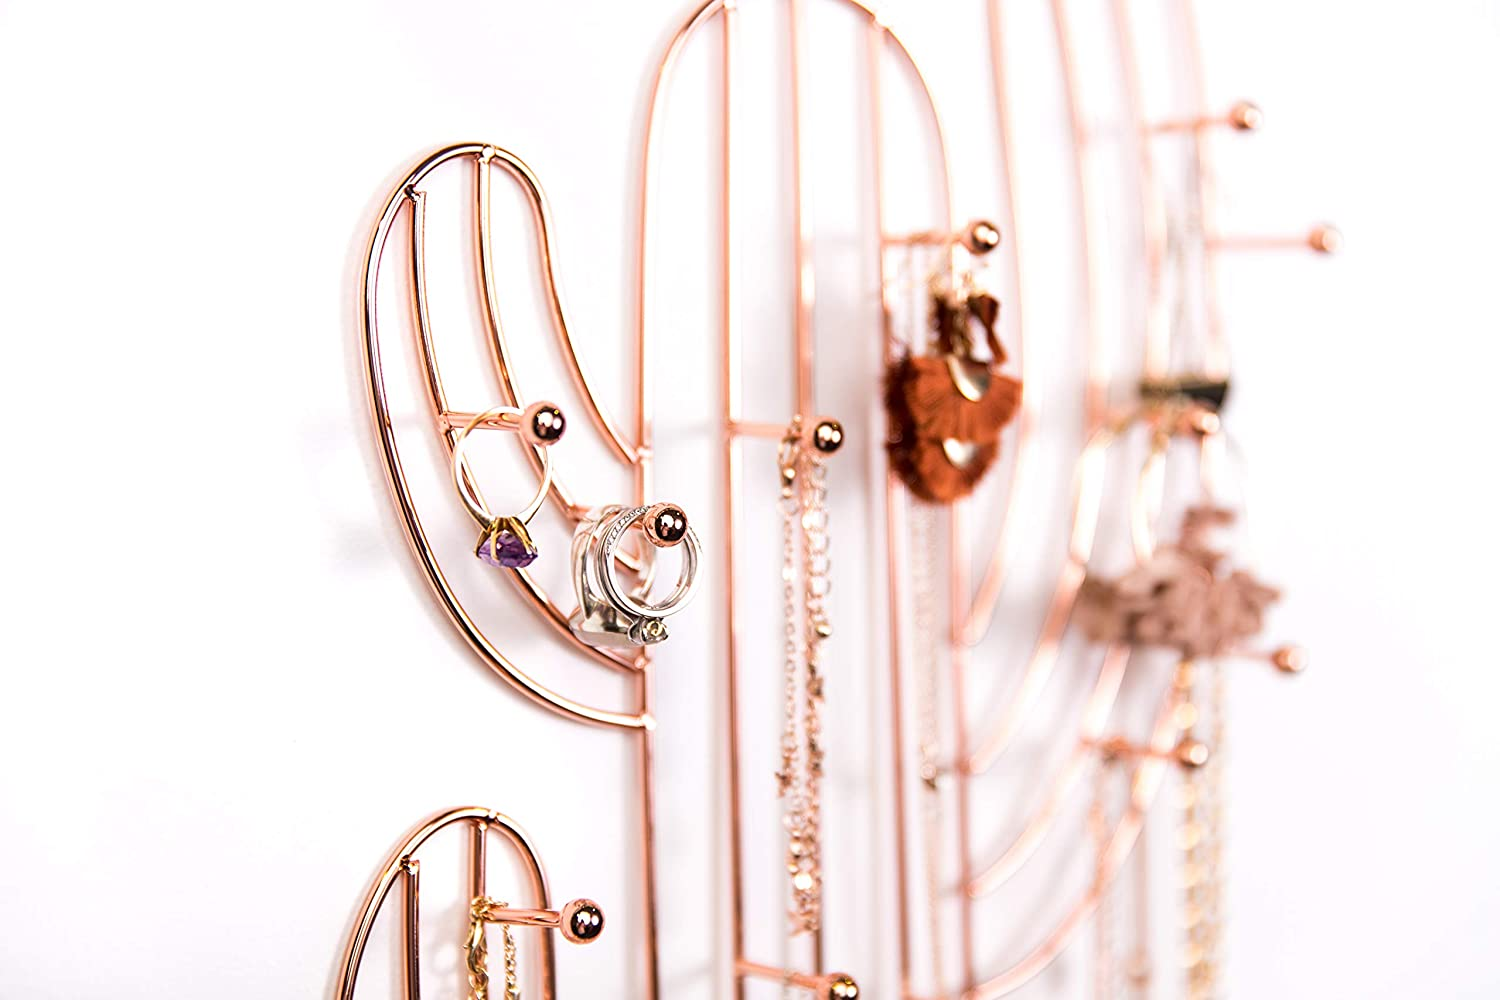 Large Hooks Wall Mounted Jewelry Holder for Necklaces Hanging Jewelry Organizer for Long Necklaces Rose Gold Cactus Design Ruby Mae Wall Jewelry Organizer Earrings /& Rings Bracelets